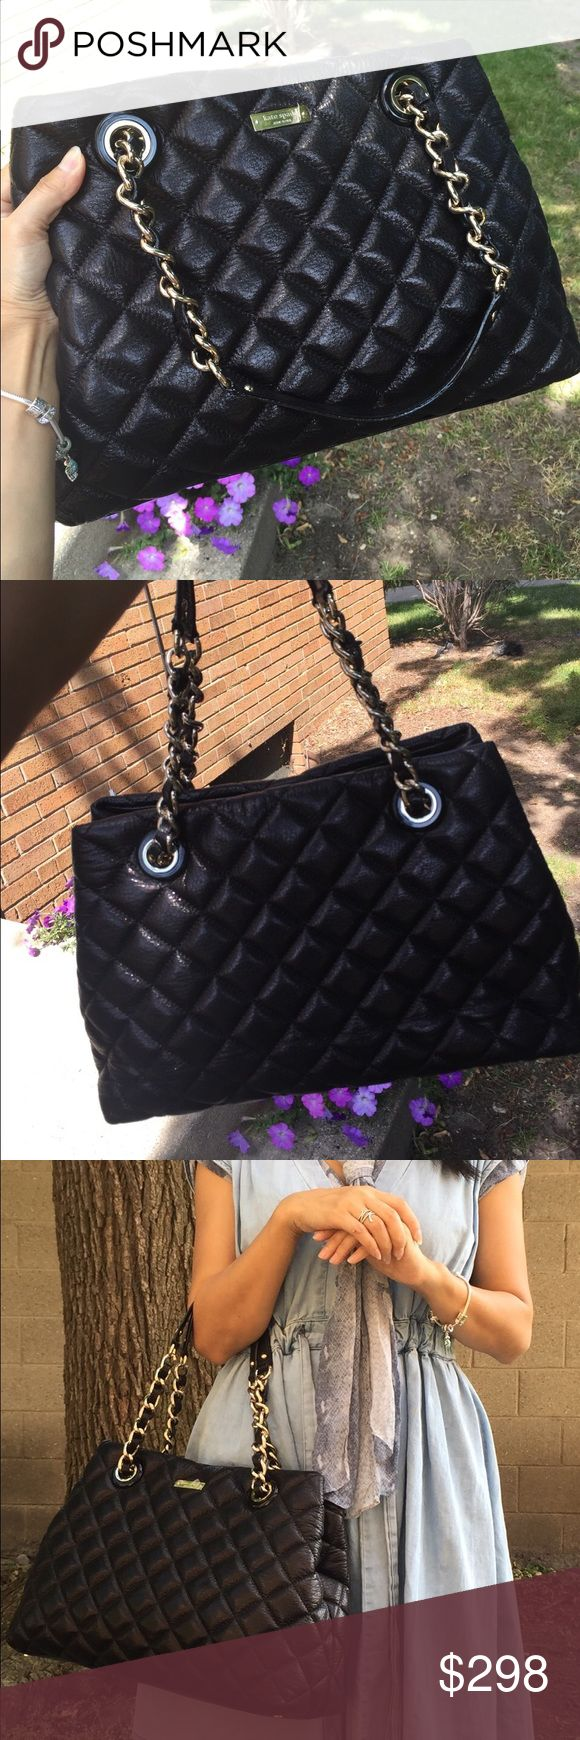 "NWT Kate Spade Quilted Leather Gold Coast Tote Soft quilted leather with beautiful shimmering finish; Classic black color;Front signature logo; Double shoulder stripes with chain details. Very nice daily working bag; 14""X10""X5""; Sold out everywhere! kate spade Bags Totes"